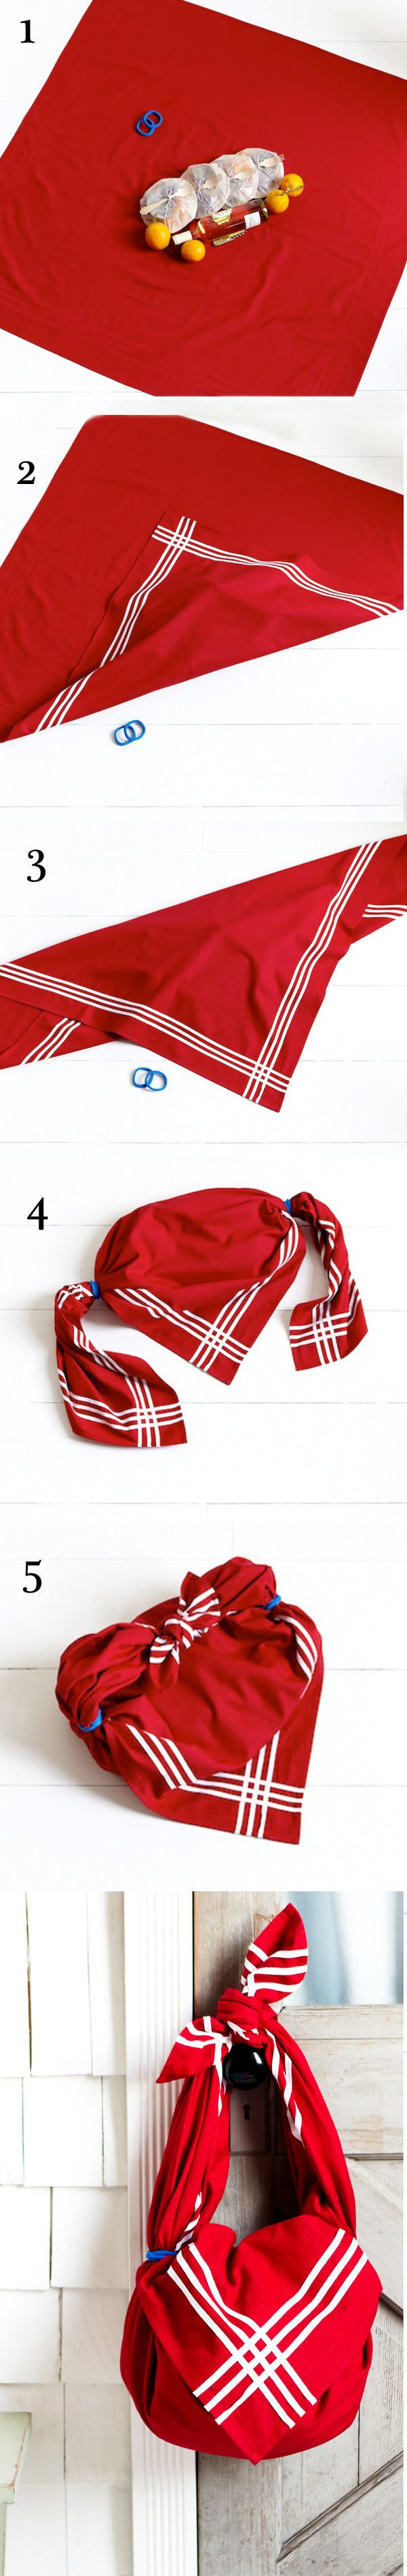 Take all your goodies to the picnic or the beach with this tablecloth tote! For the how-to steps visit www.onekingslane.com/live-love-home/2012/06/tablecloth-tote/